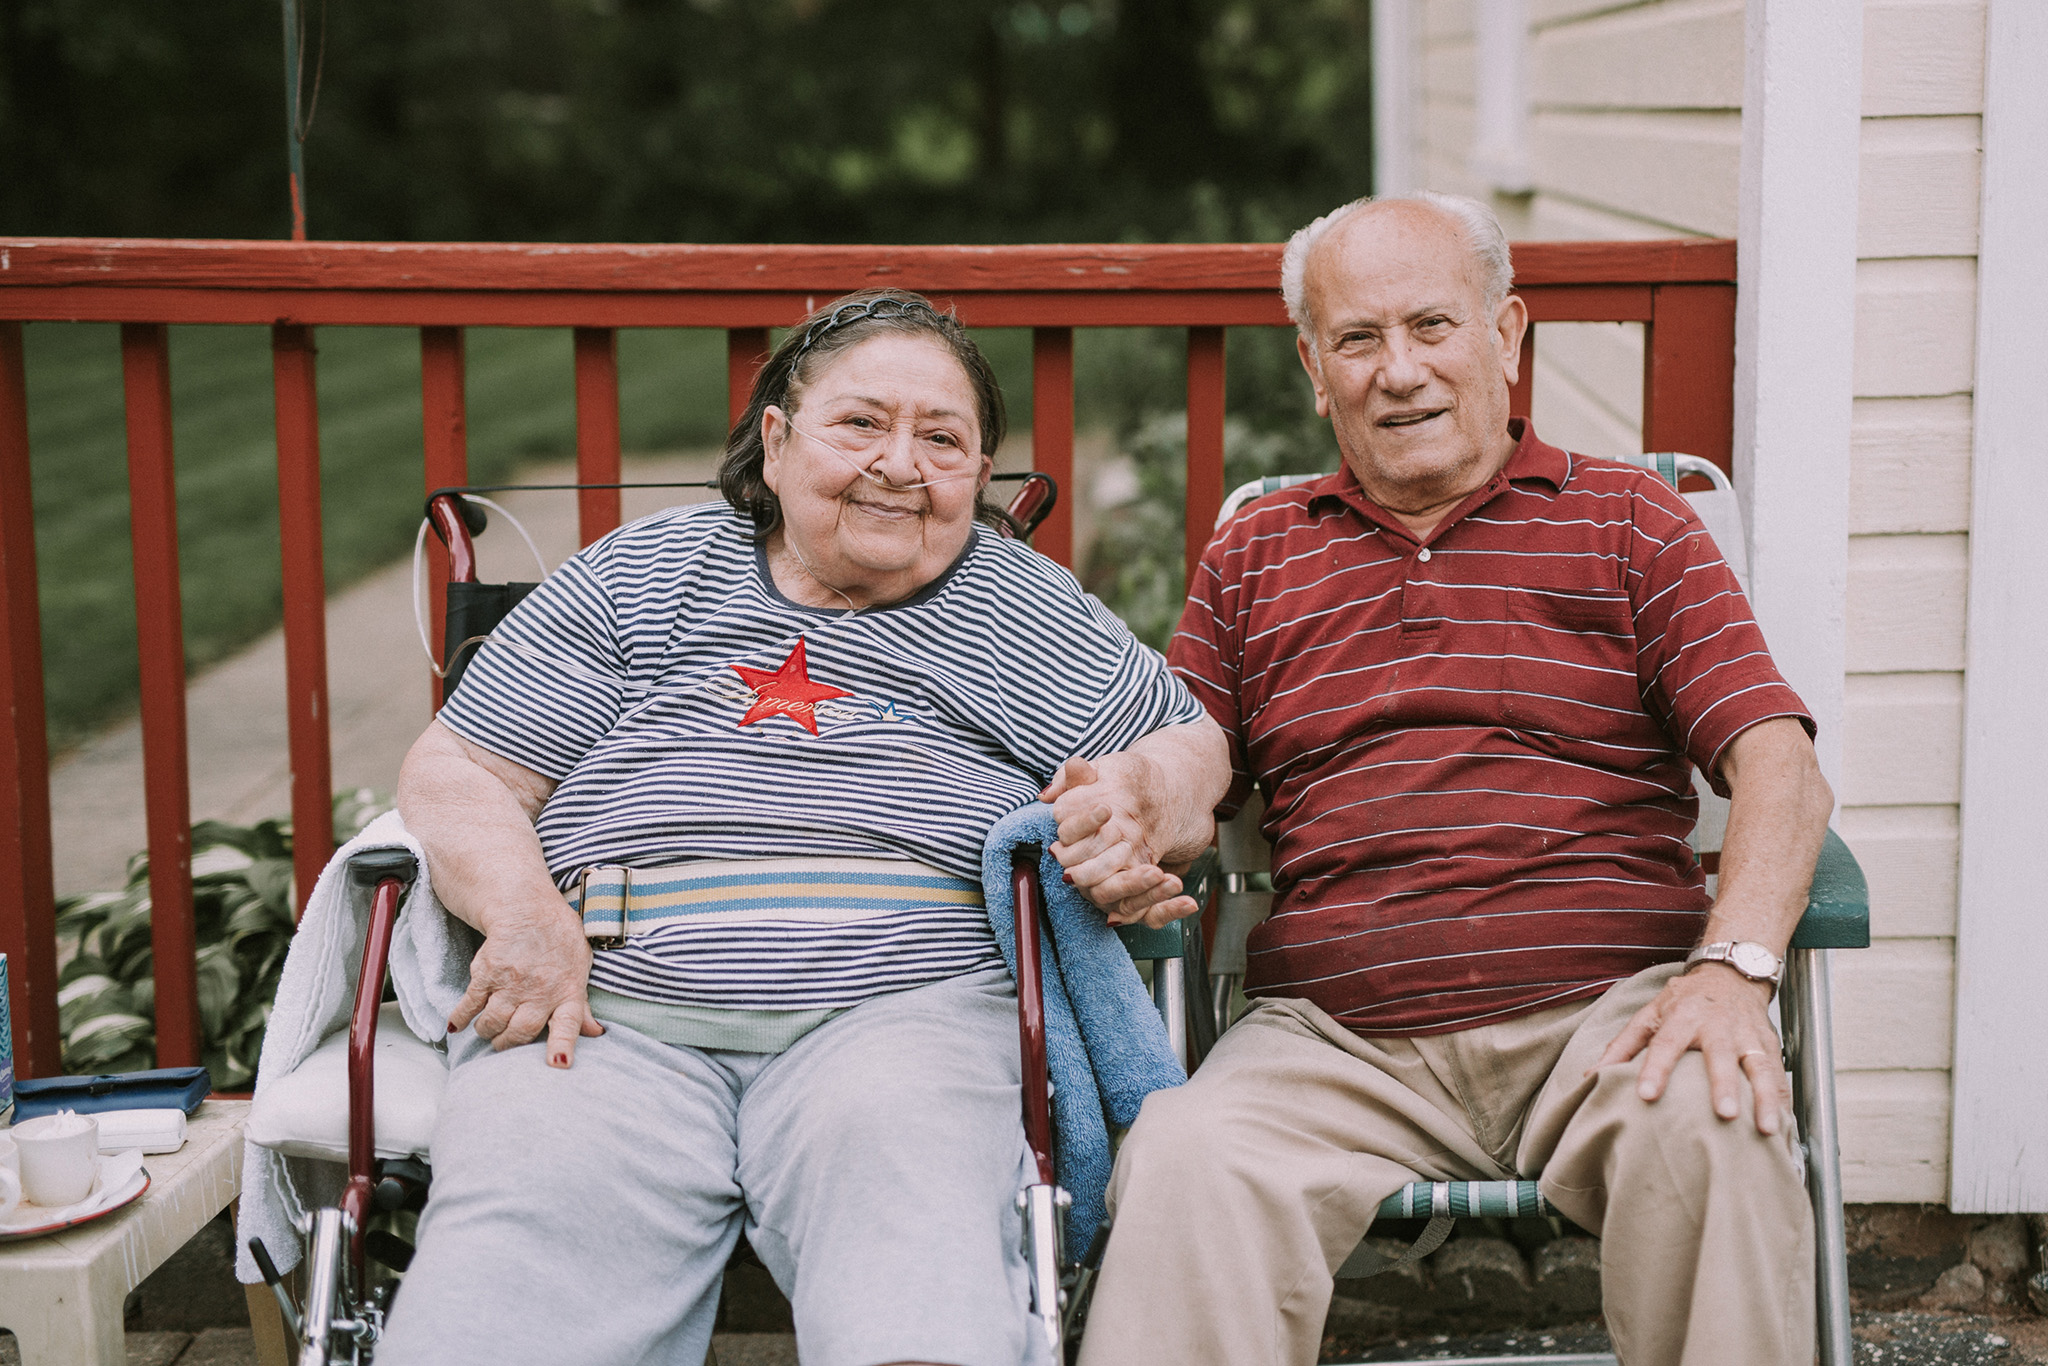 June 10: Maria and Joe bought the house next door to us 40+ years ago. They ran a shoe store in town for the whole of their career. They're a good conversation, full of stories and life. On nice days you'll find them sitting at the end of their driveway, just like this.